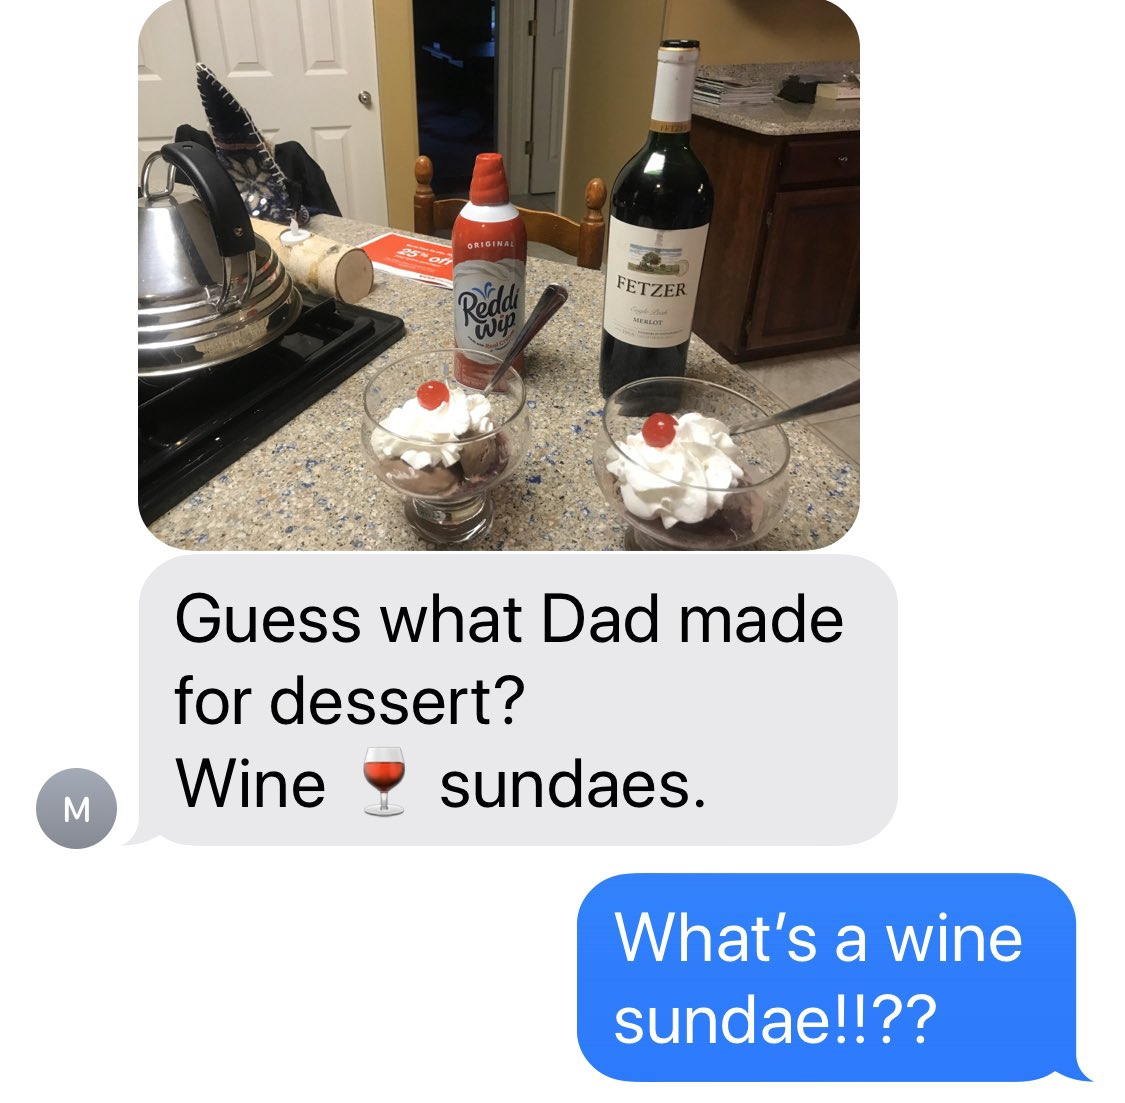 Texting with my Mom in Quarantine. She's making wine sundaes. 🍷🍨